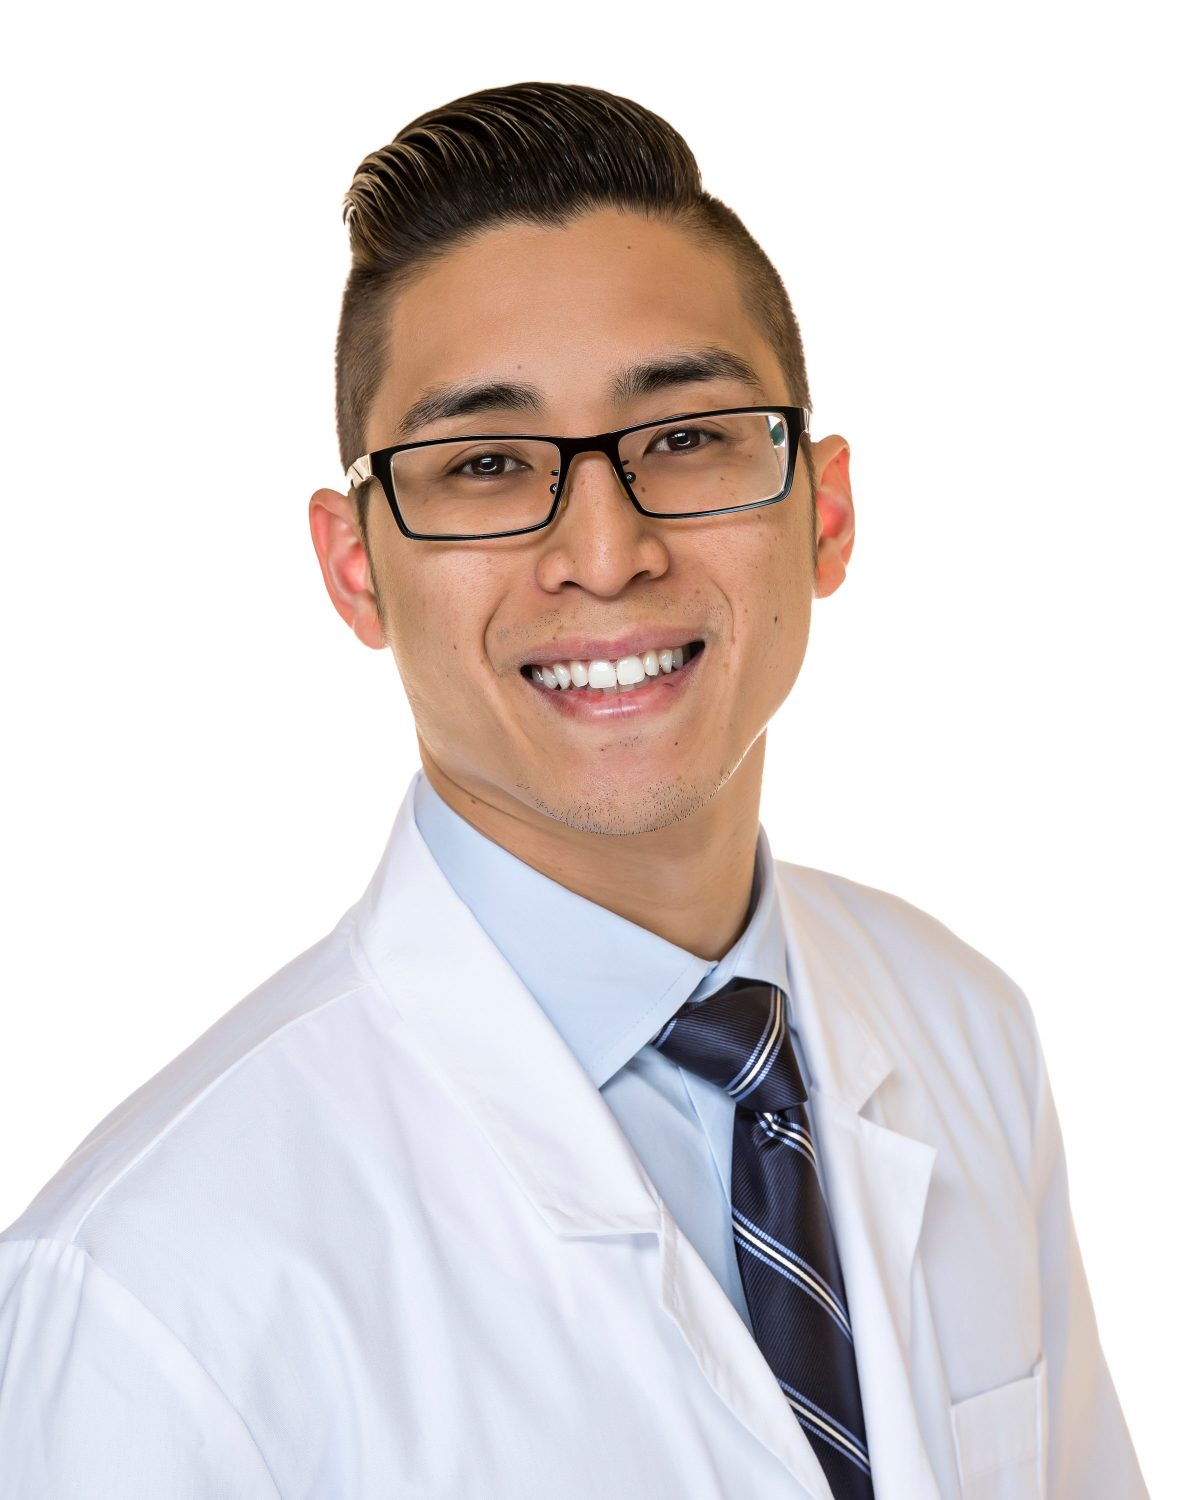 https://dentalopolis.com/wp-content/uploads/2018/07/Doctor-Vincent-Nguyen-1200x1500.jpg